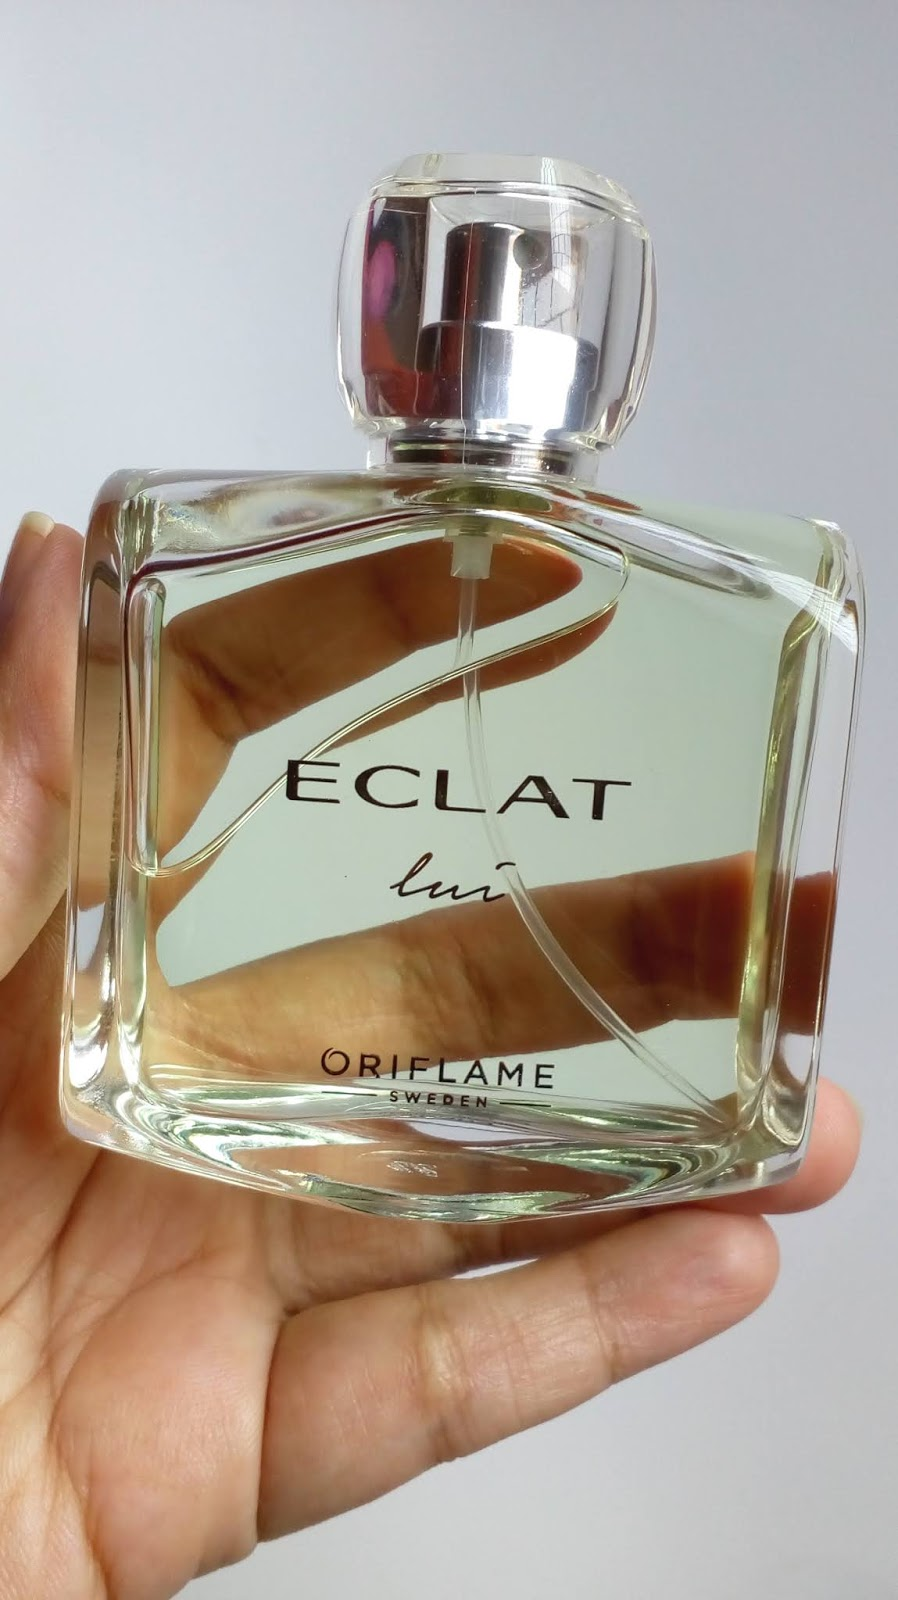 Eclat Mademoiselle And Lui Edt Perfumes Review